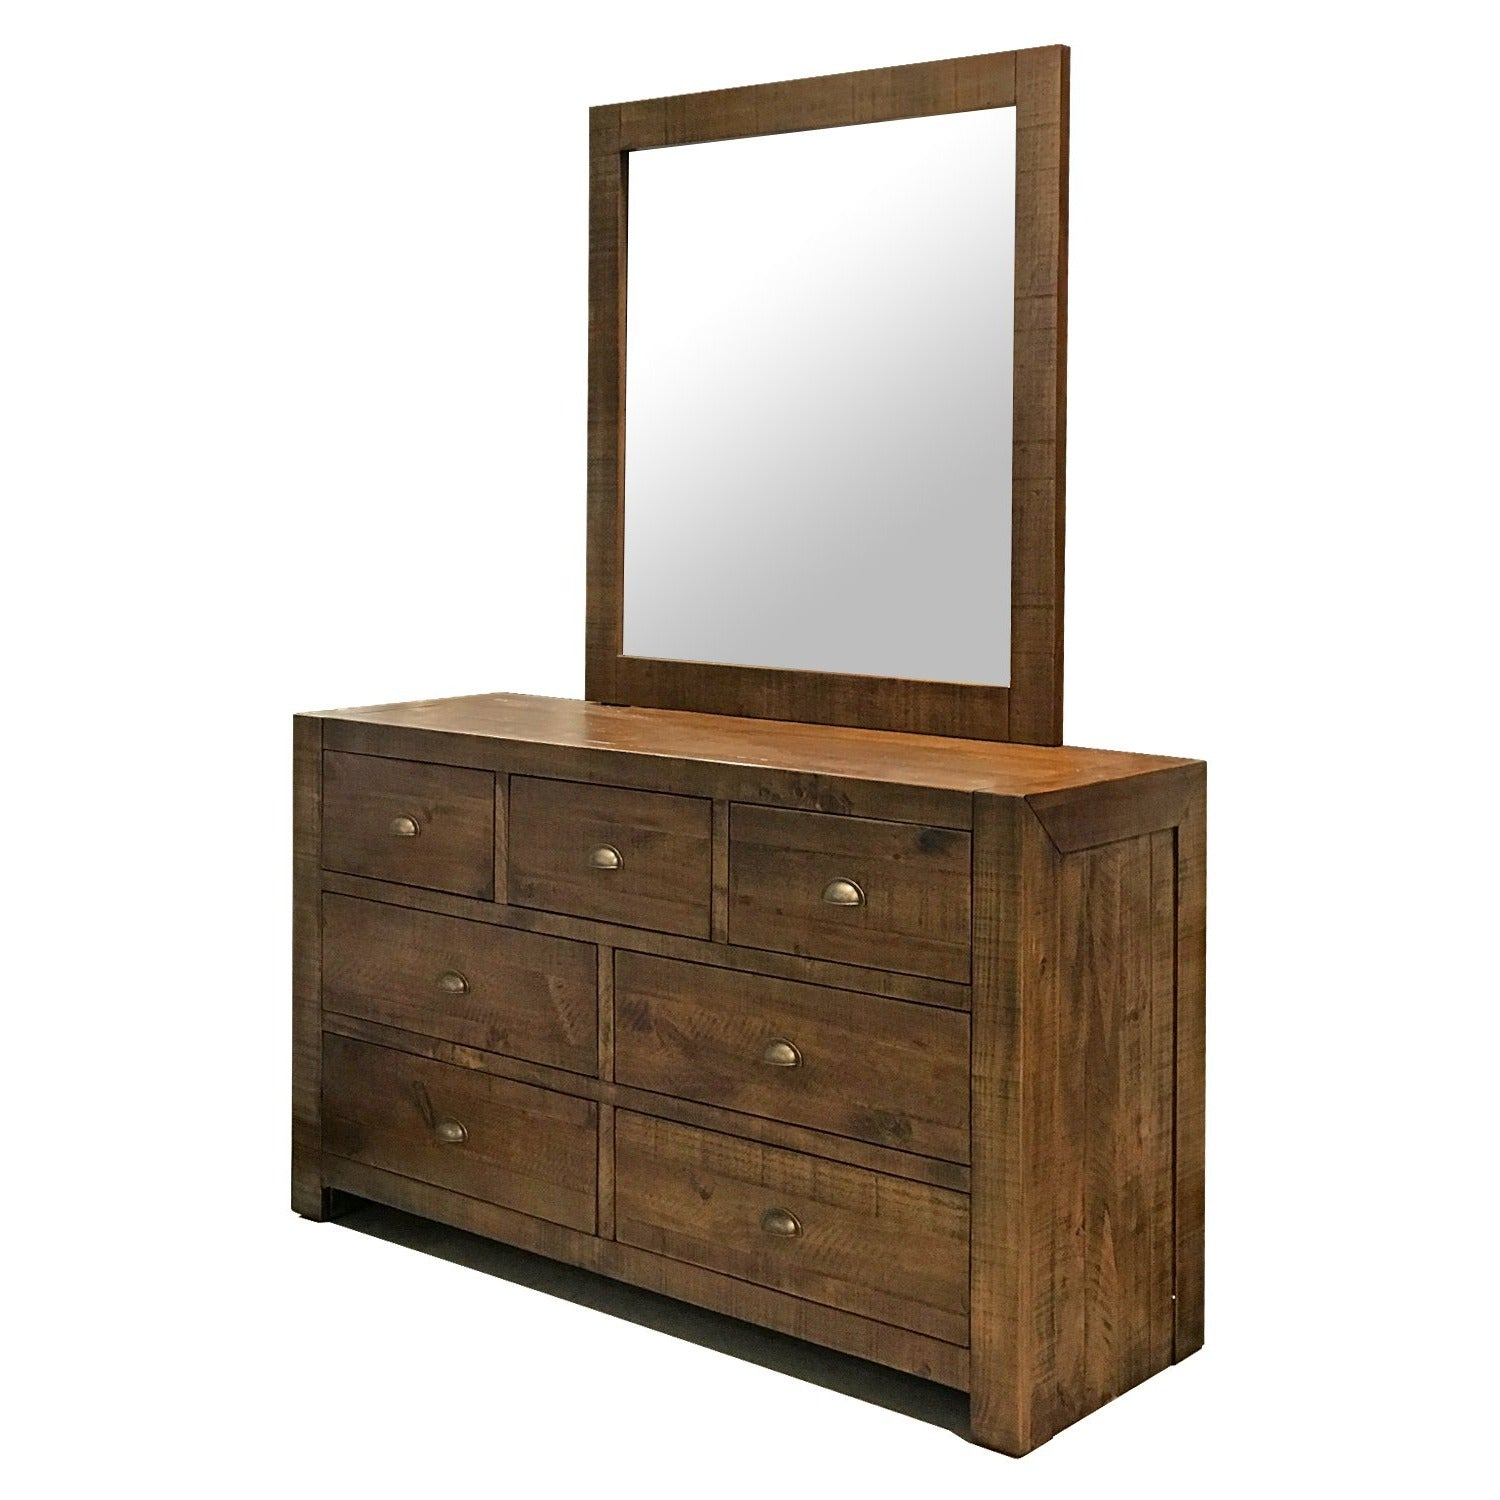 Fletcher Mirror (To Suit Dresser)